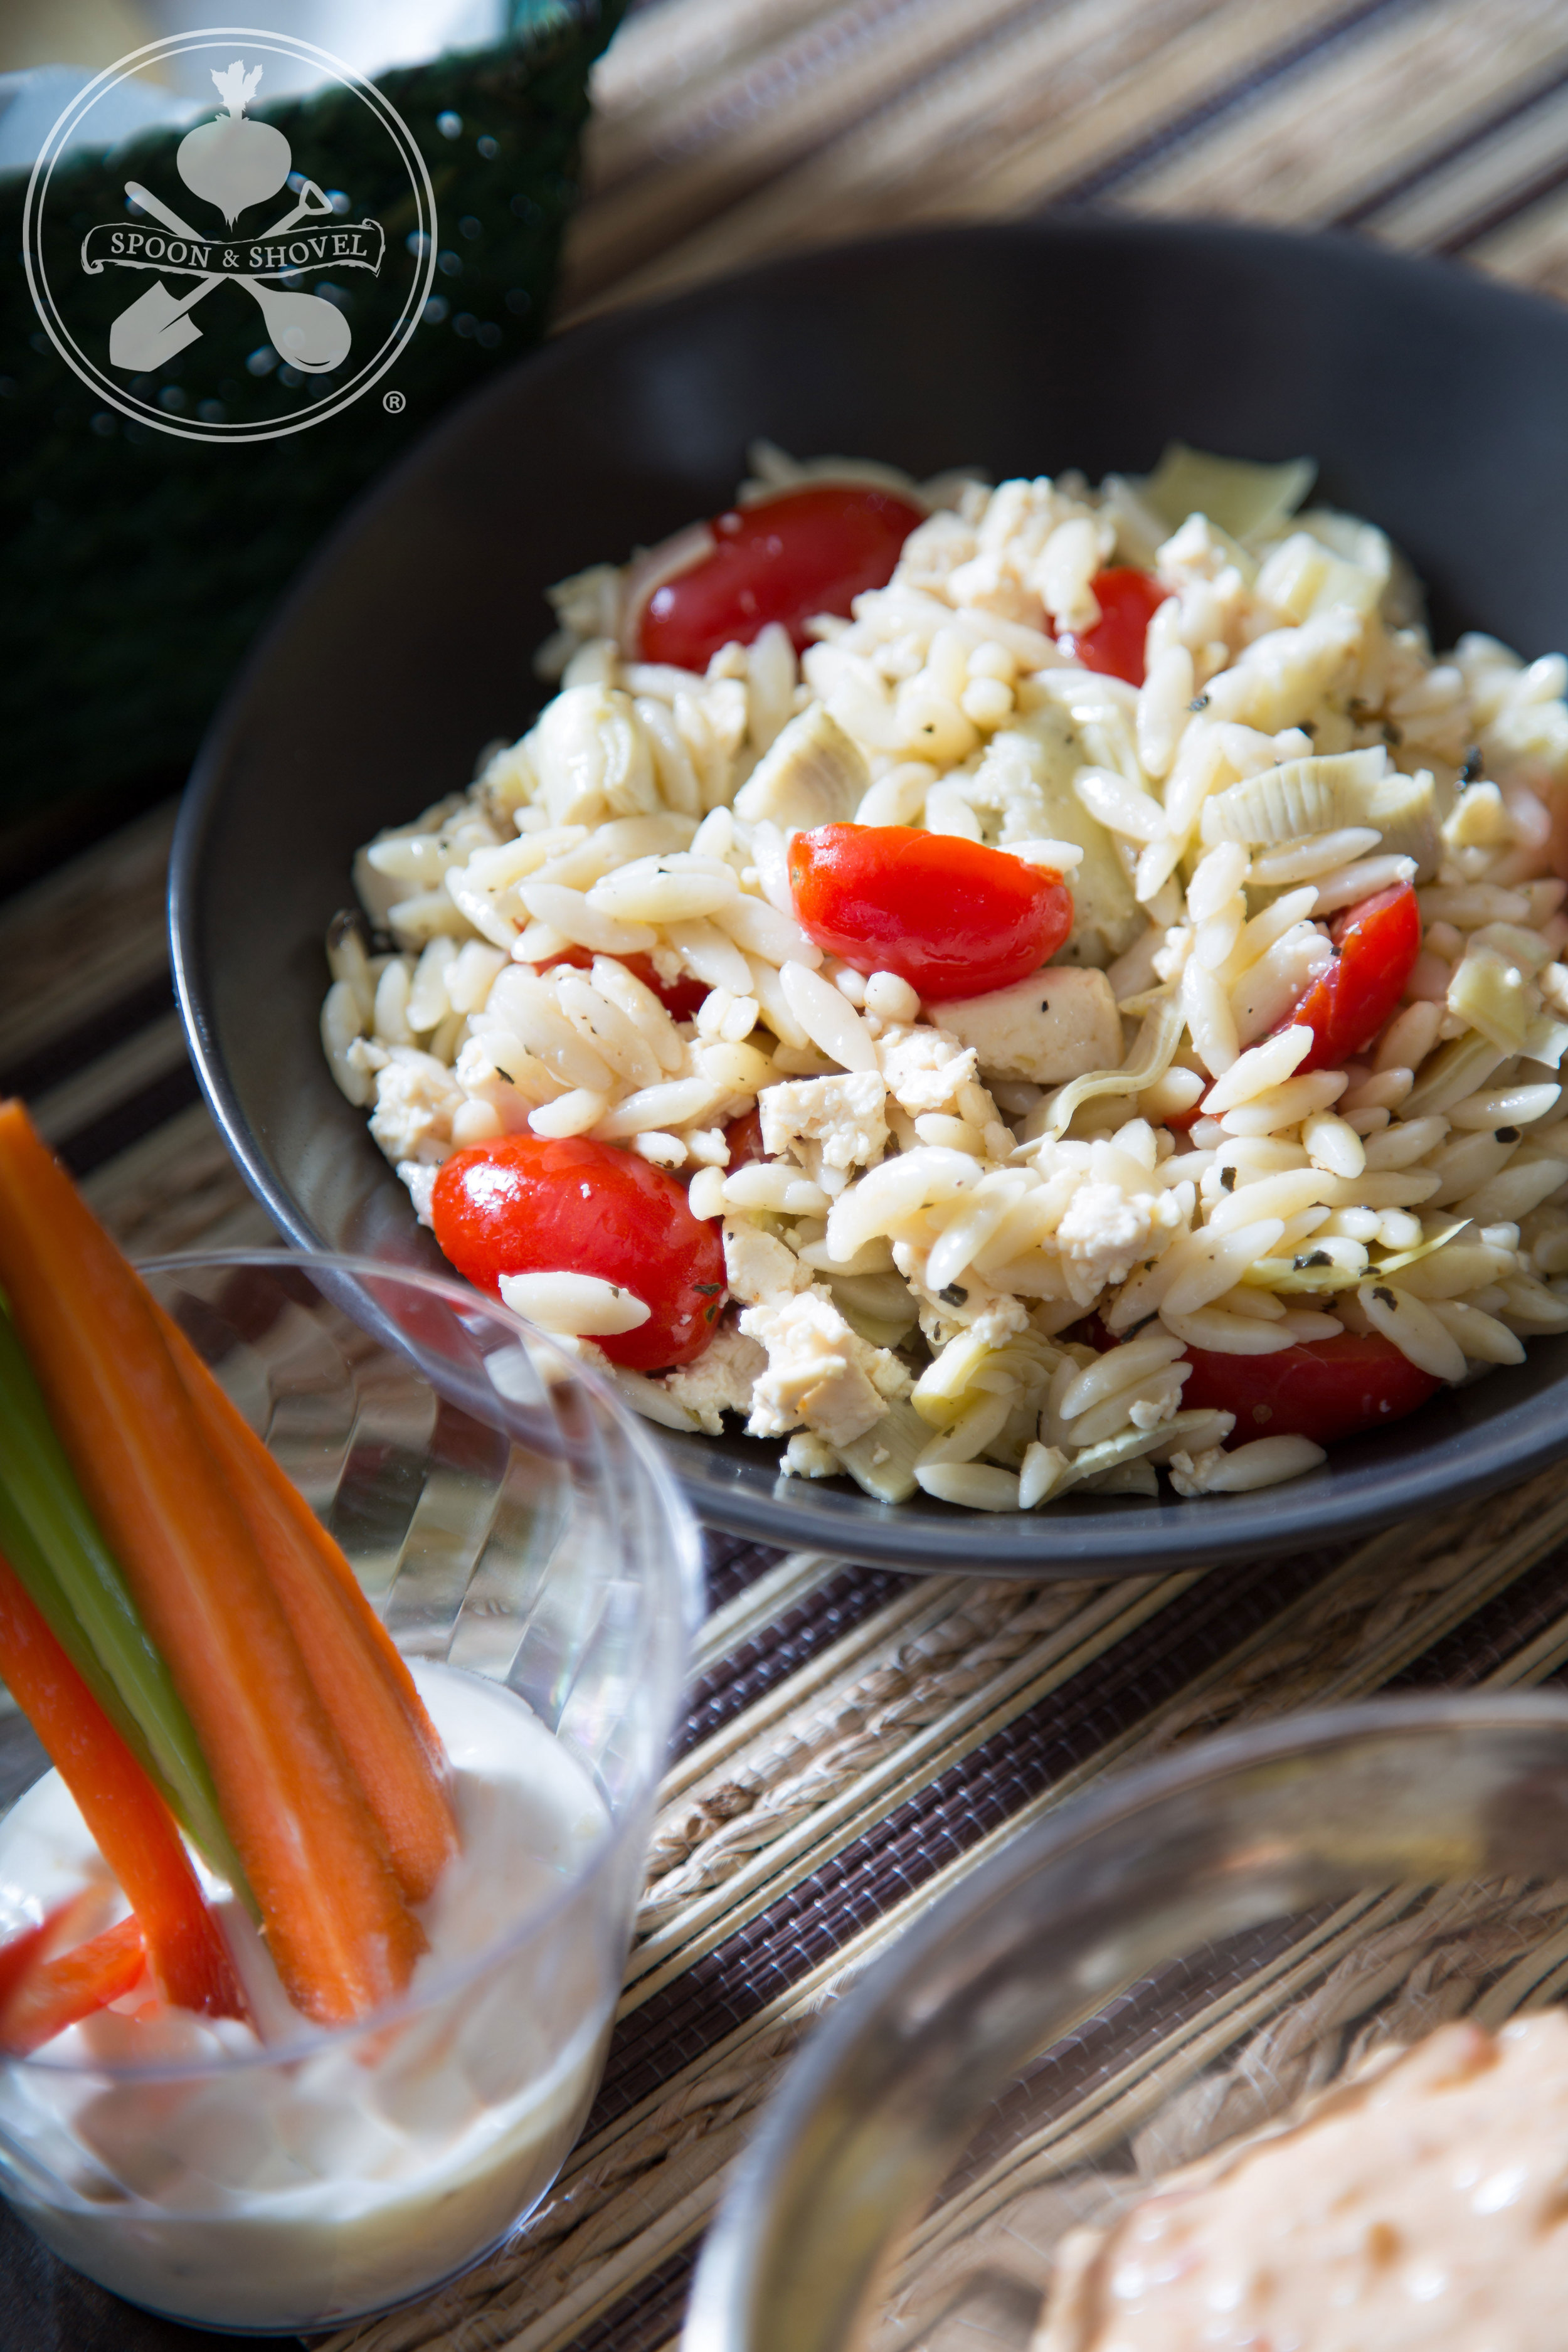 Tomato, vegan feta and artichoke orzo salad (with ranch cups in the foreground)